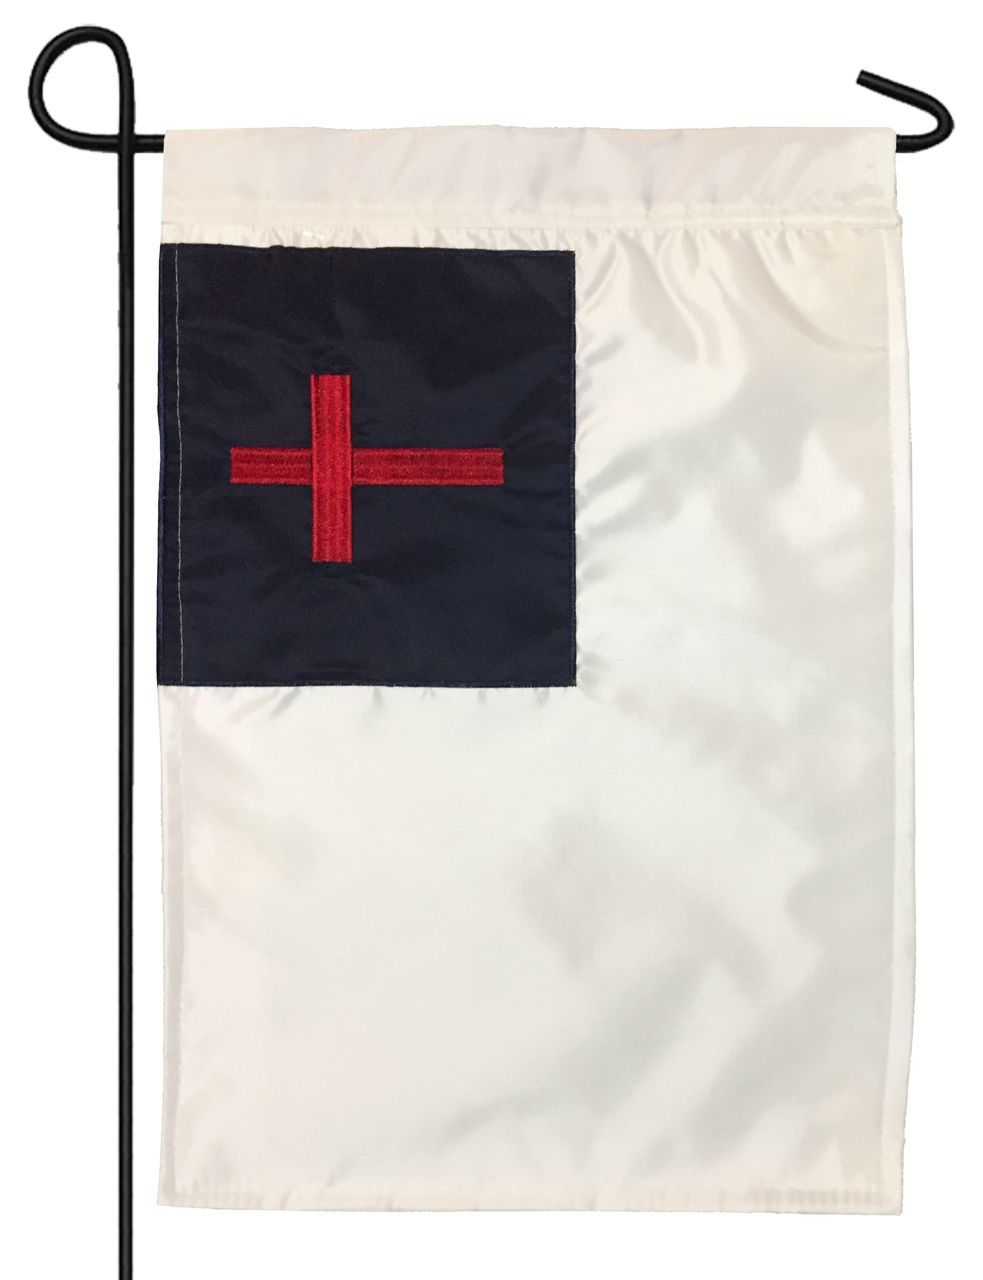 Christian Double Applique Garden Flag - All Decorative Flags/Themes/Inspirational and Religious Flags - I AmEricas Flags